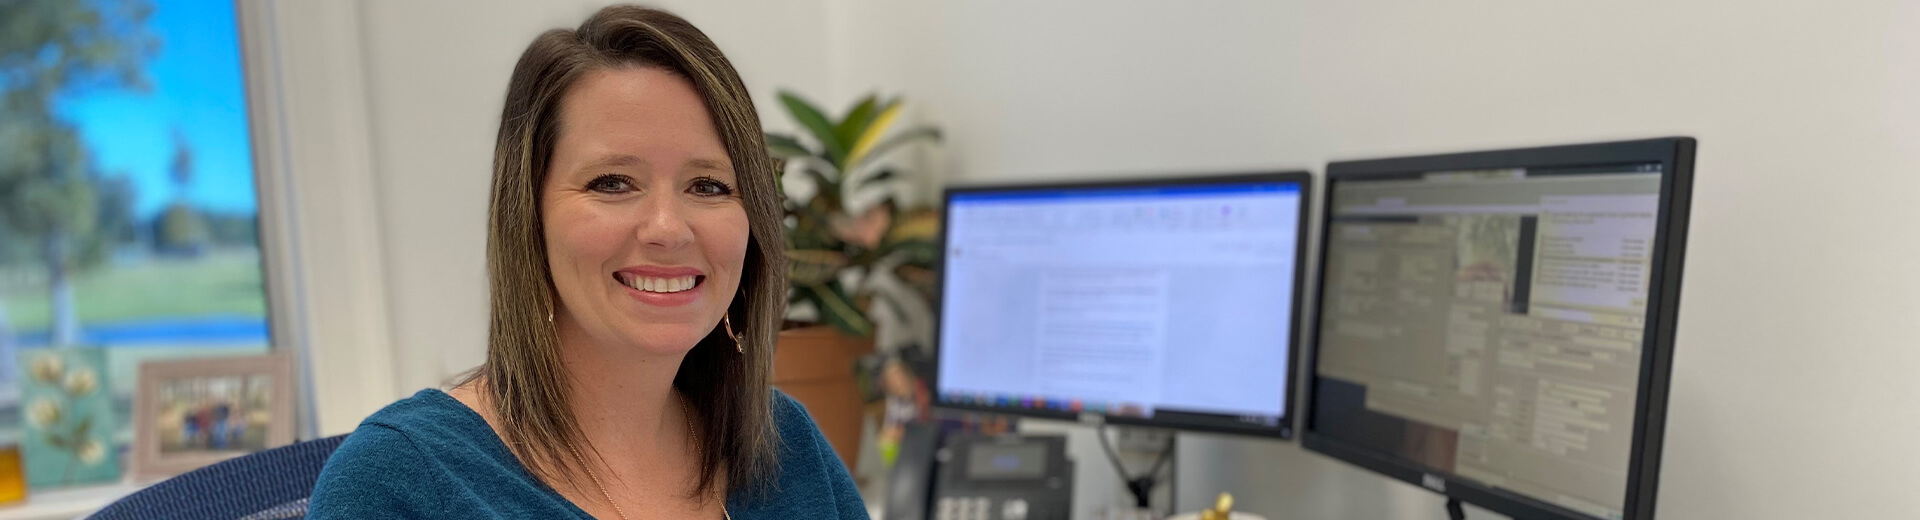 Waste Packaging Company Credit Manager - Mandy Nettles